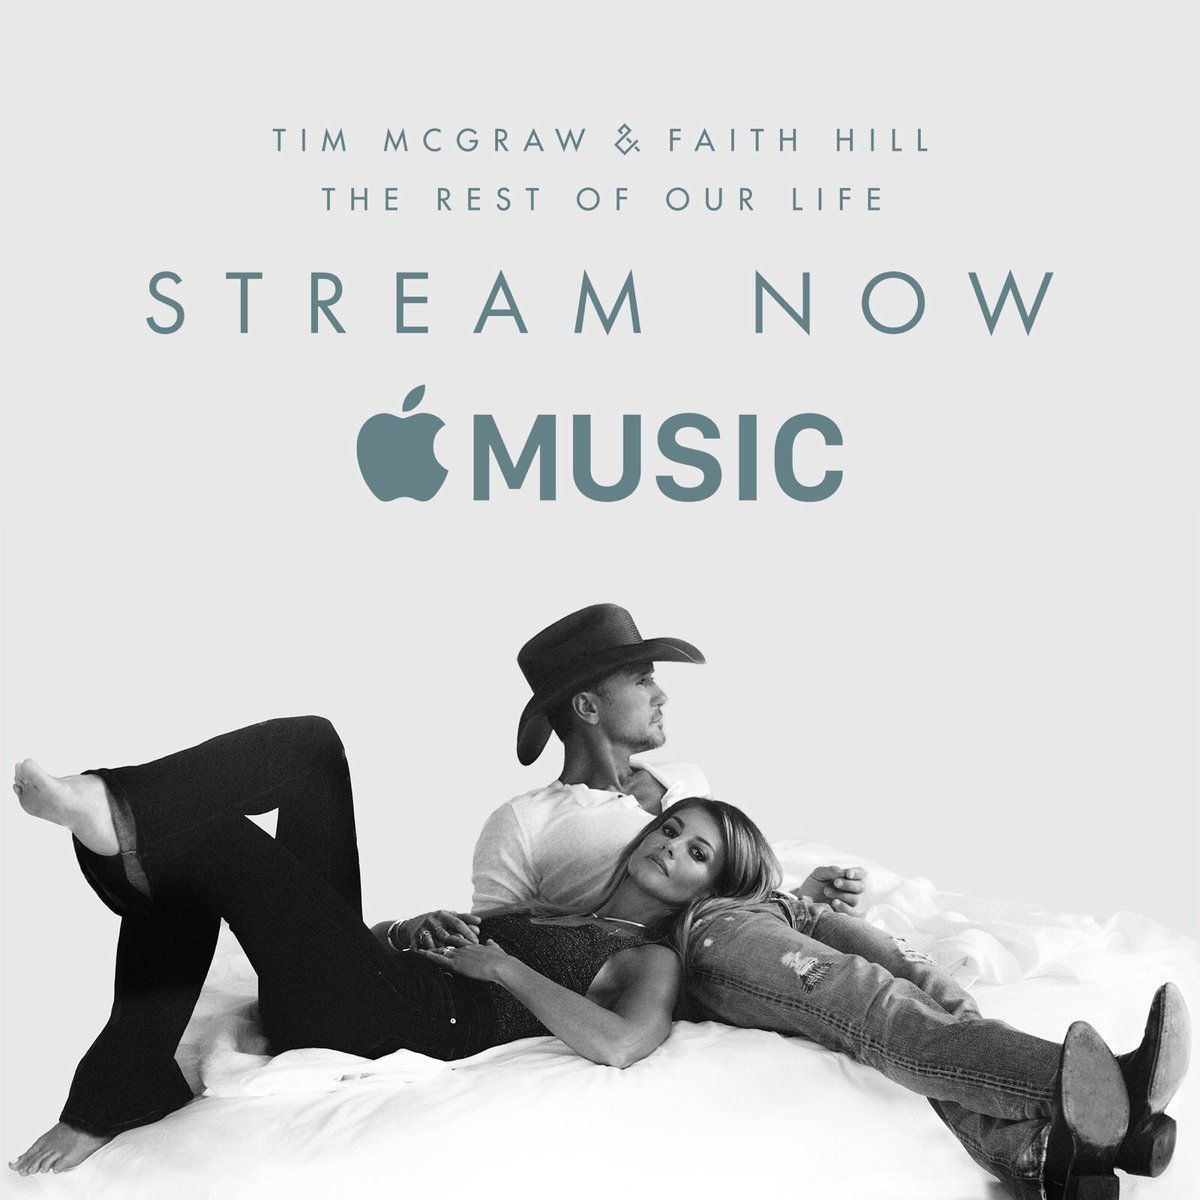 #TheRestOfOurLife is available now on @AppleMusic! https://t.co/tAWJR7r15P